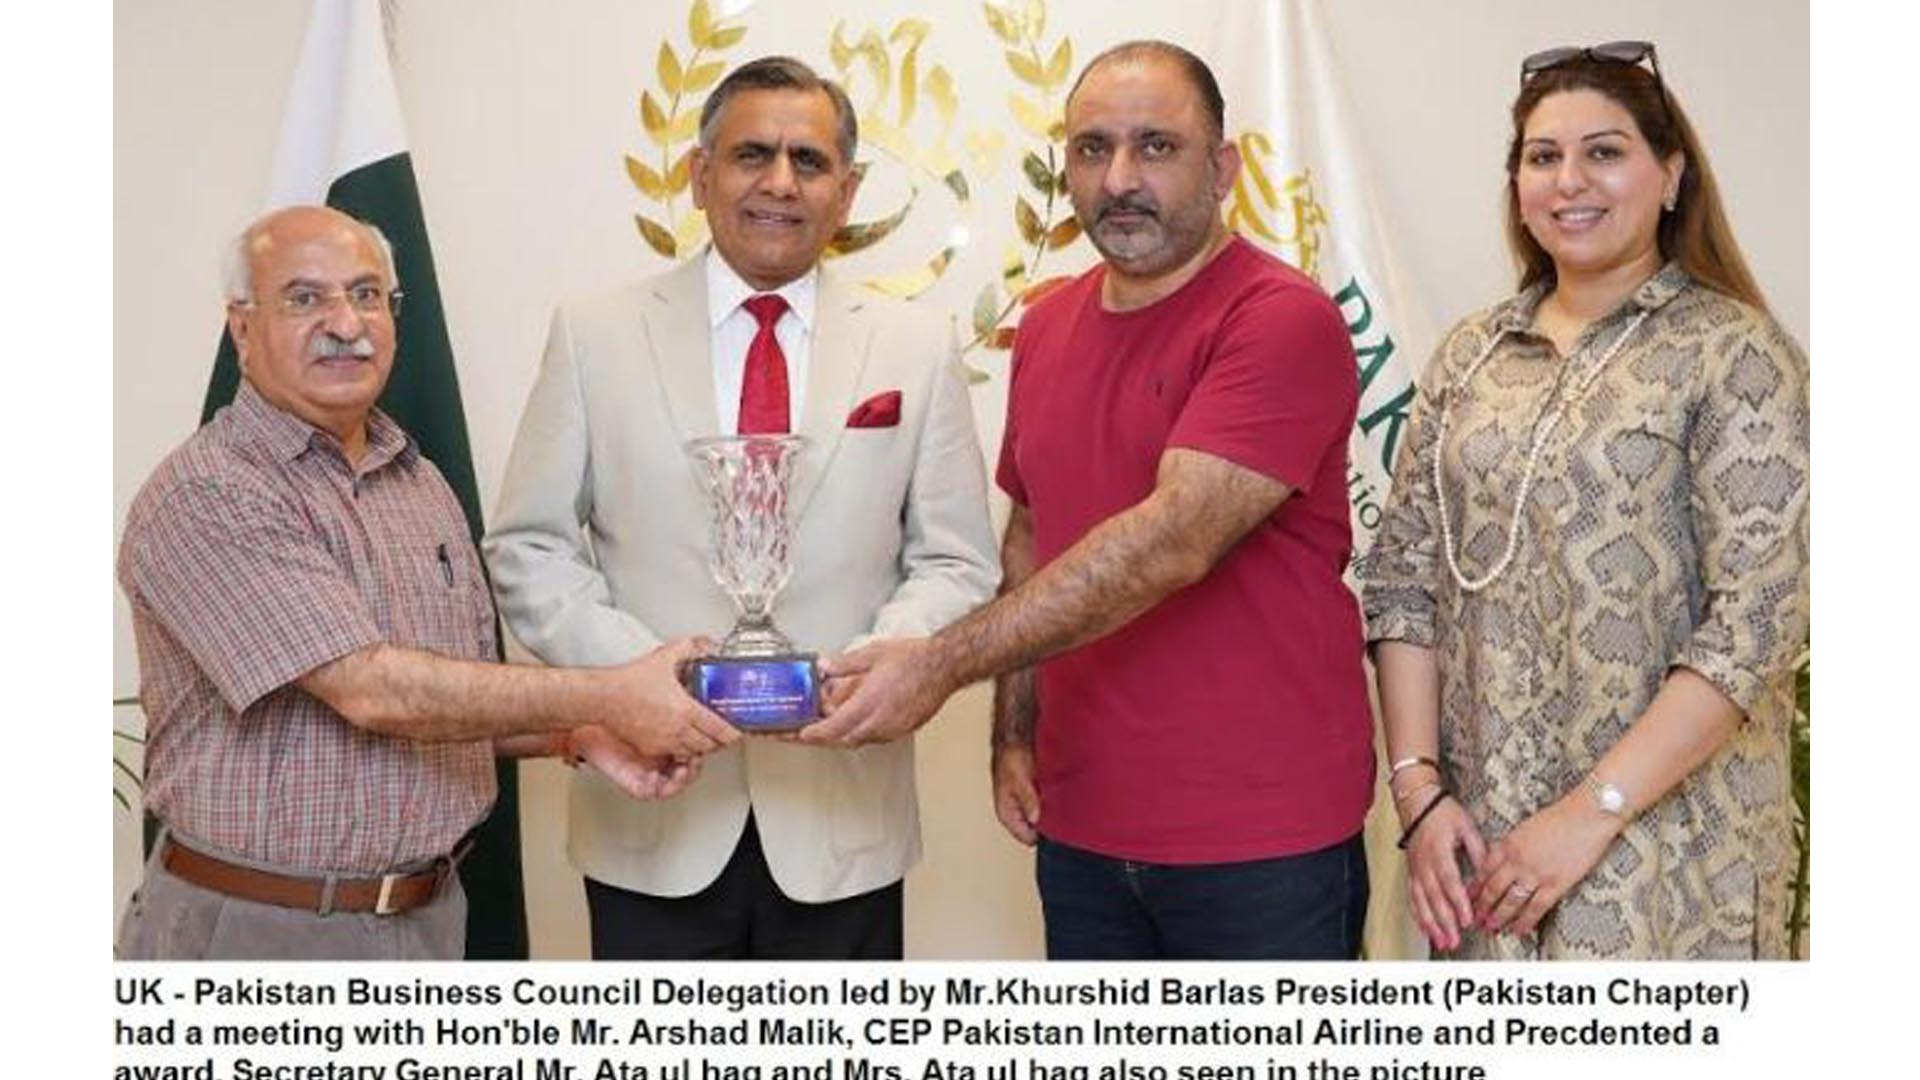 PIA has provided business opportunities: Chairman